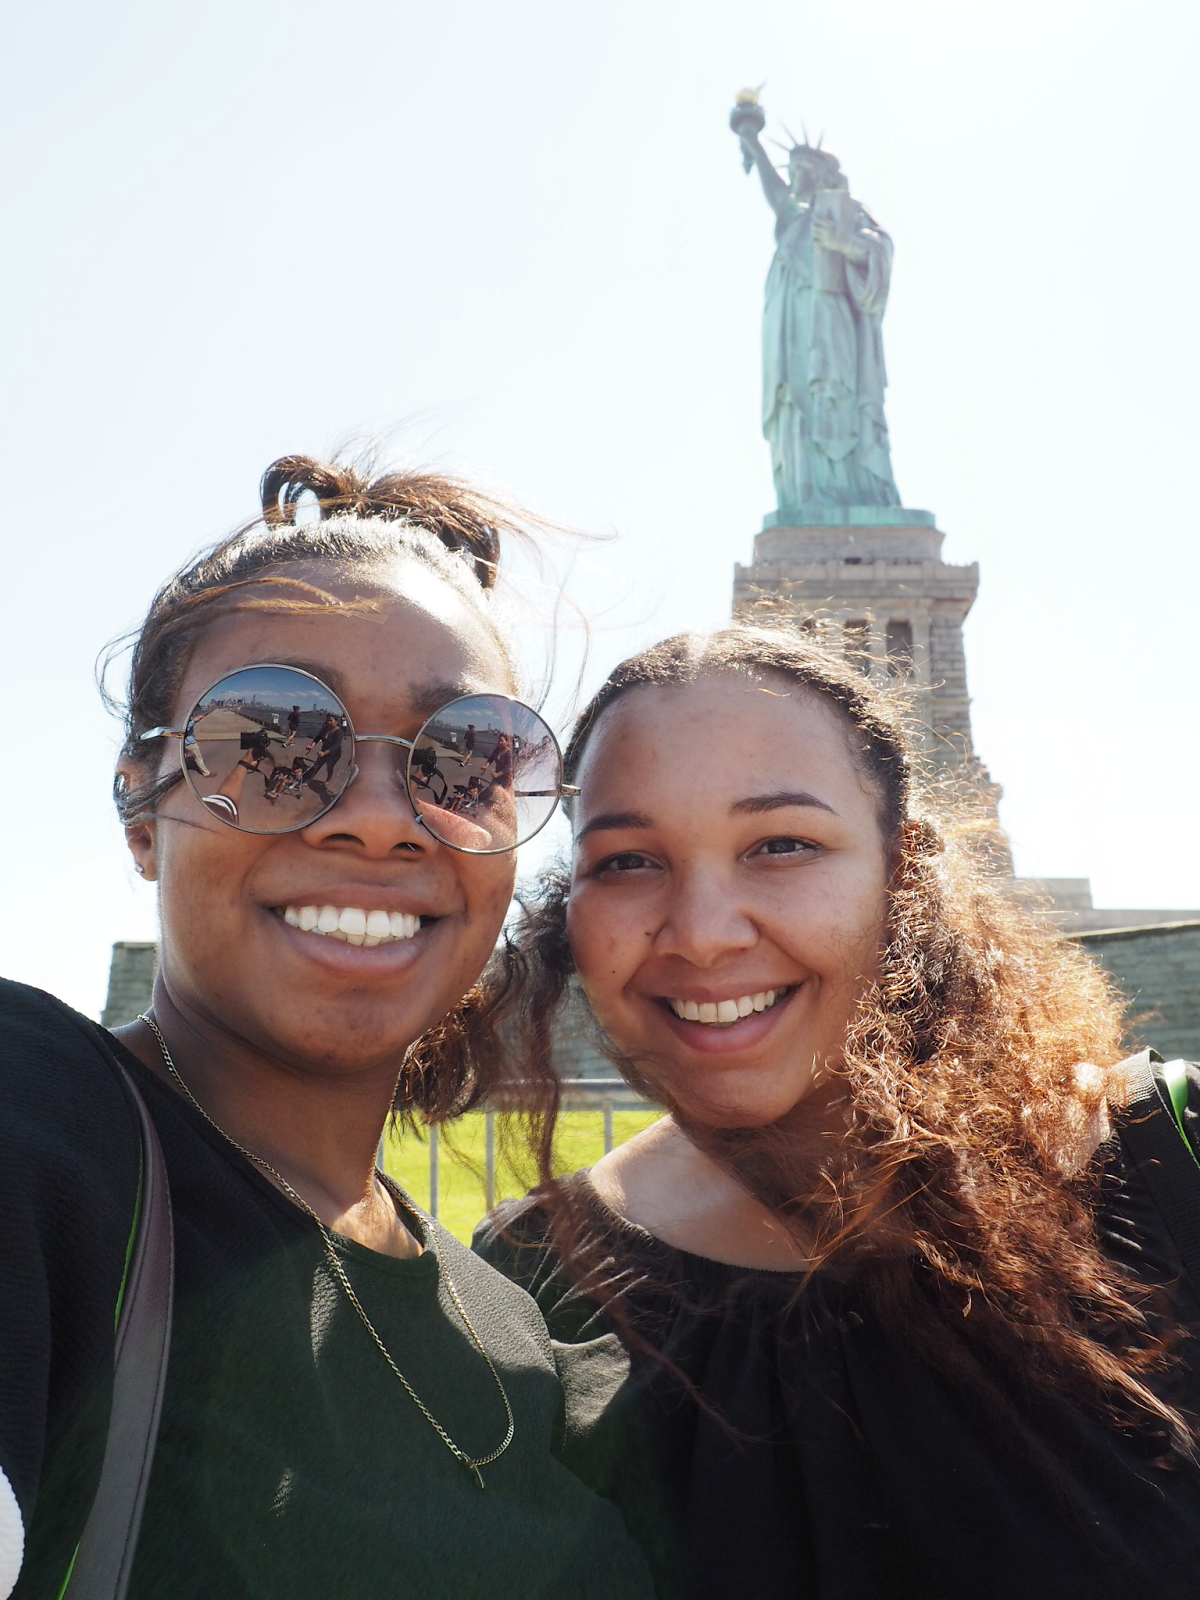 nyc-part-one-day-statue-of-liberty-selfie